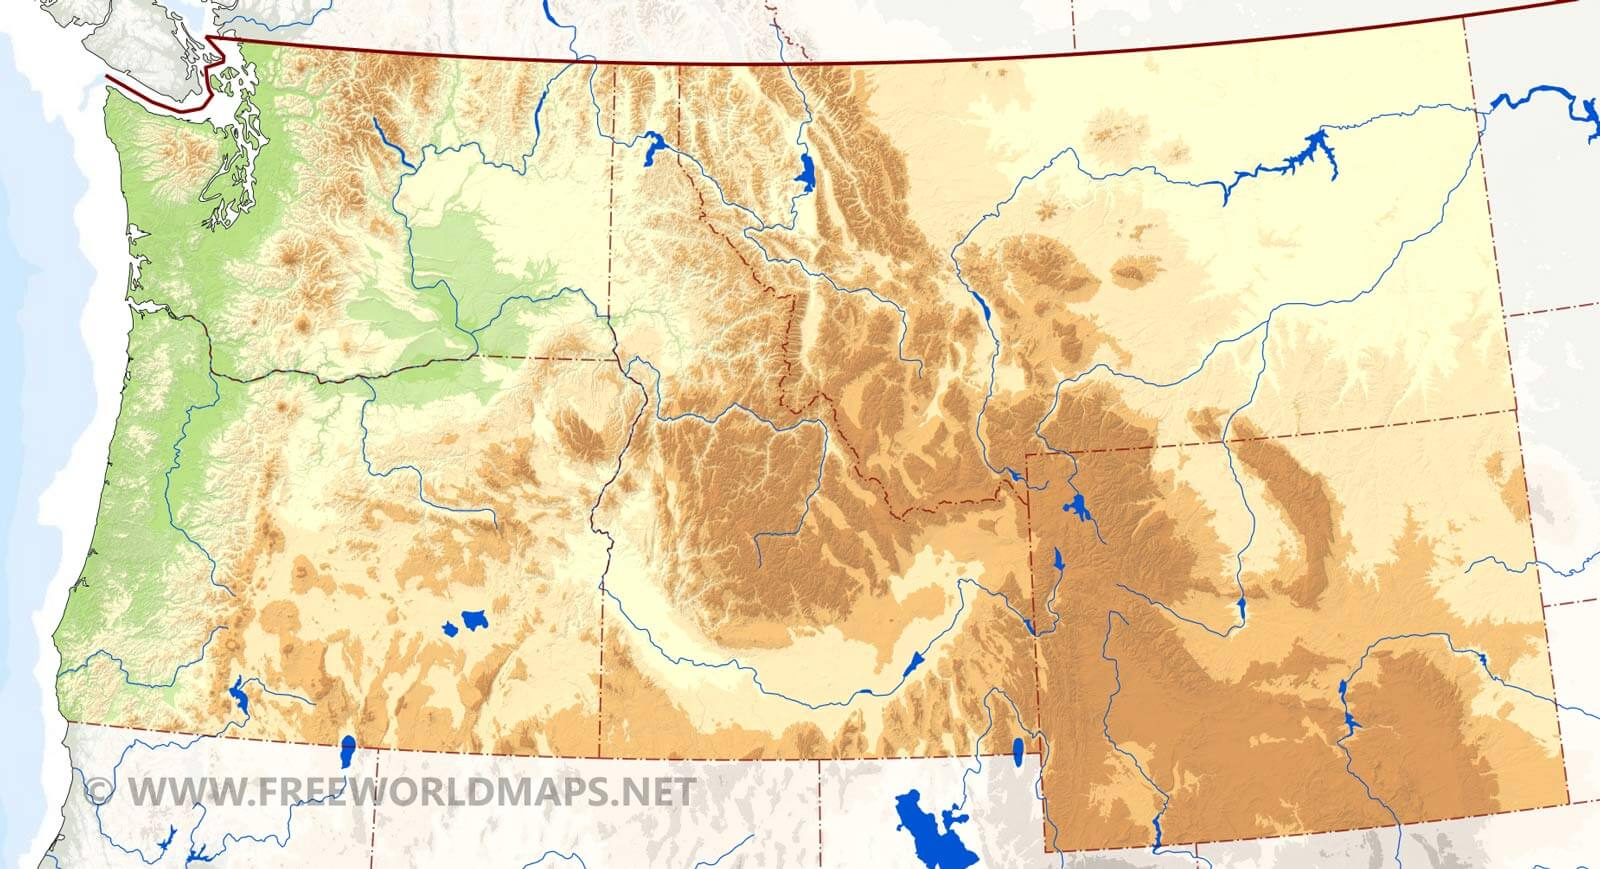 northwestern us map in hd high resolution physical map of northwestern ...